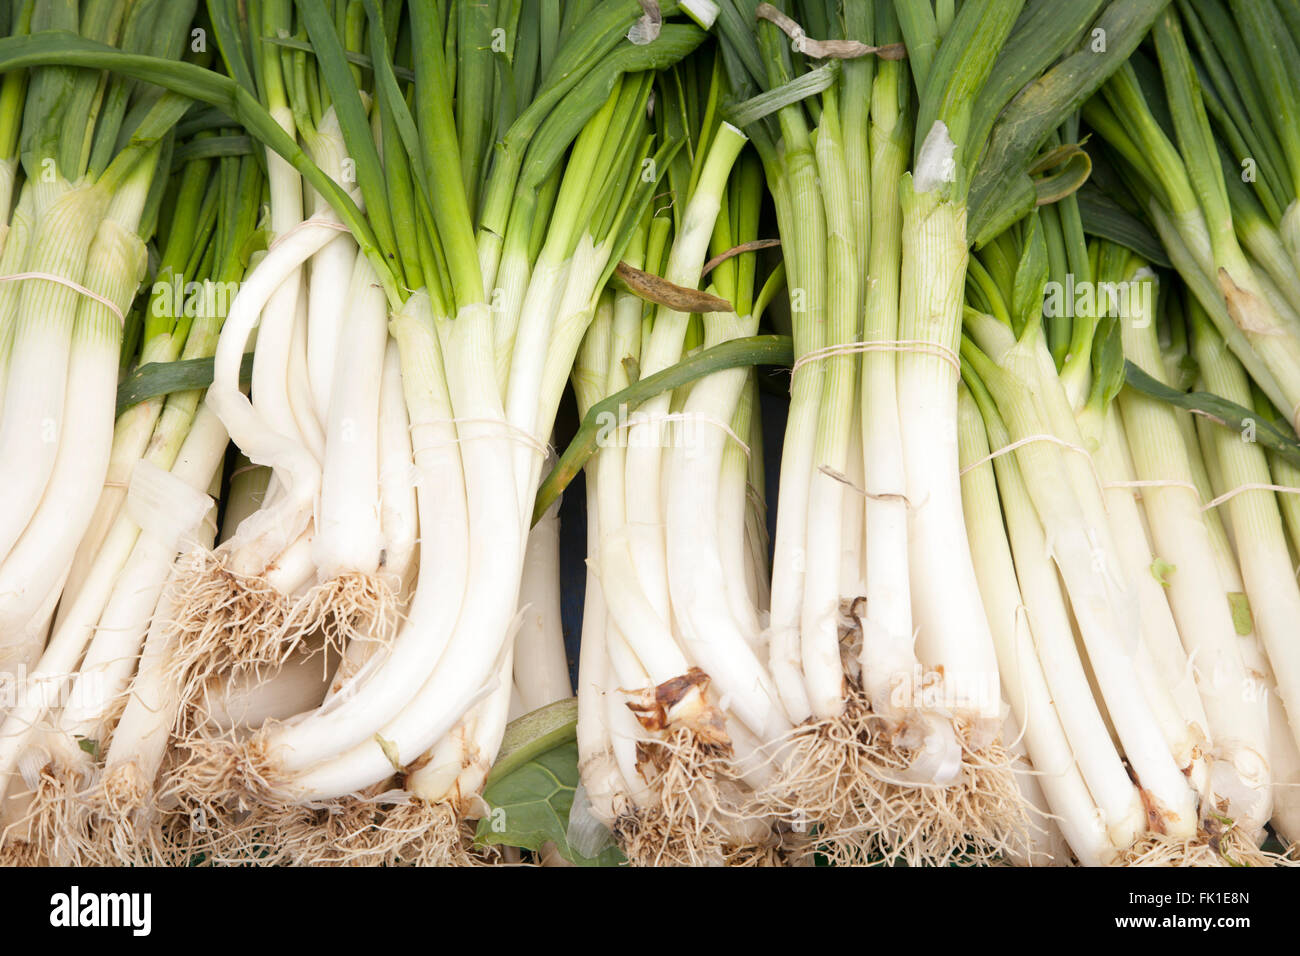 chives - Stock Image